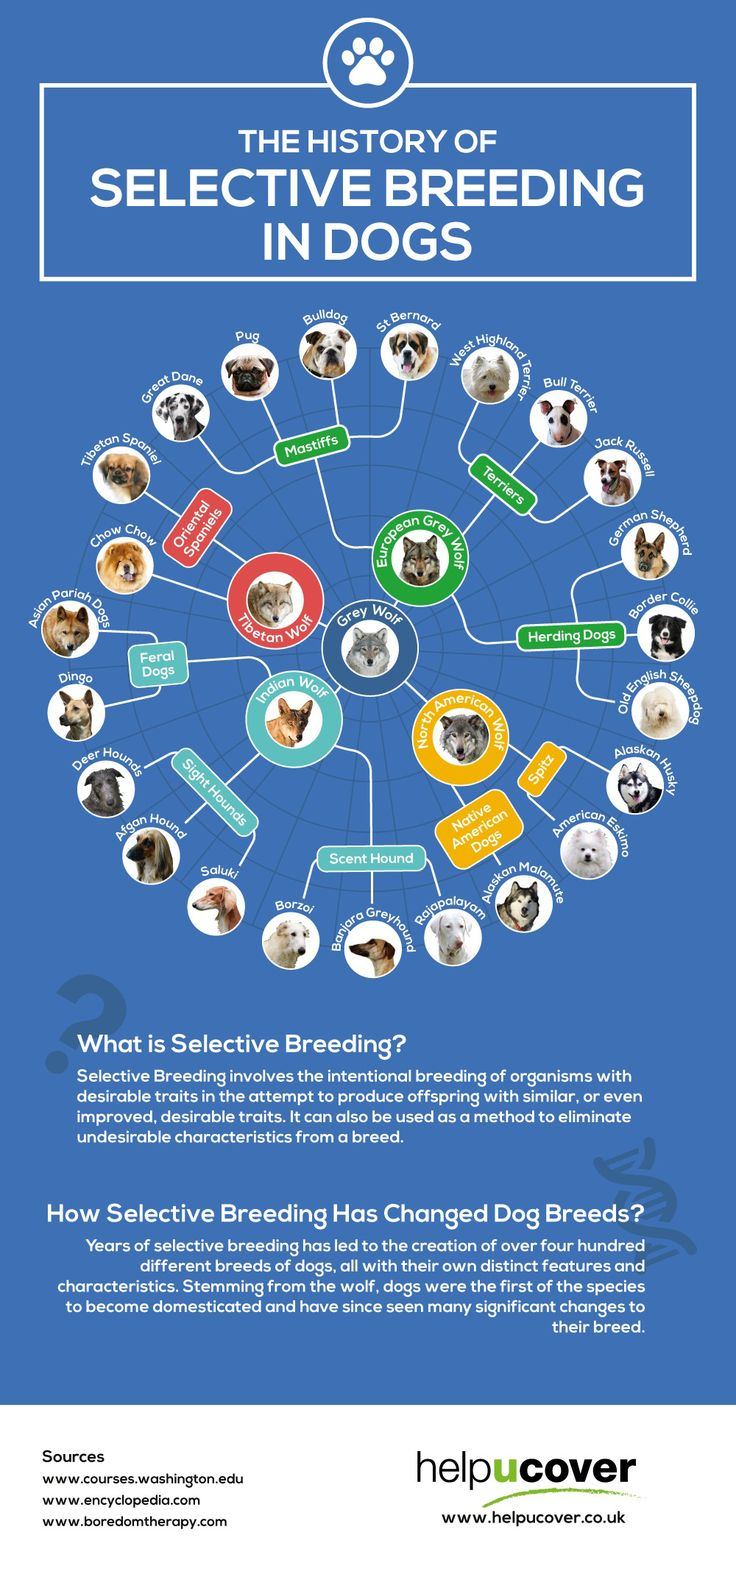 The History of Selective Breeding in Dogs #Infographic #Animals #Dogs